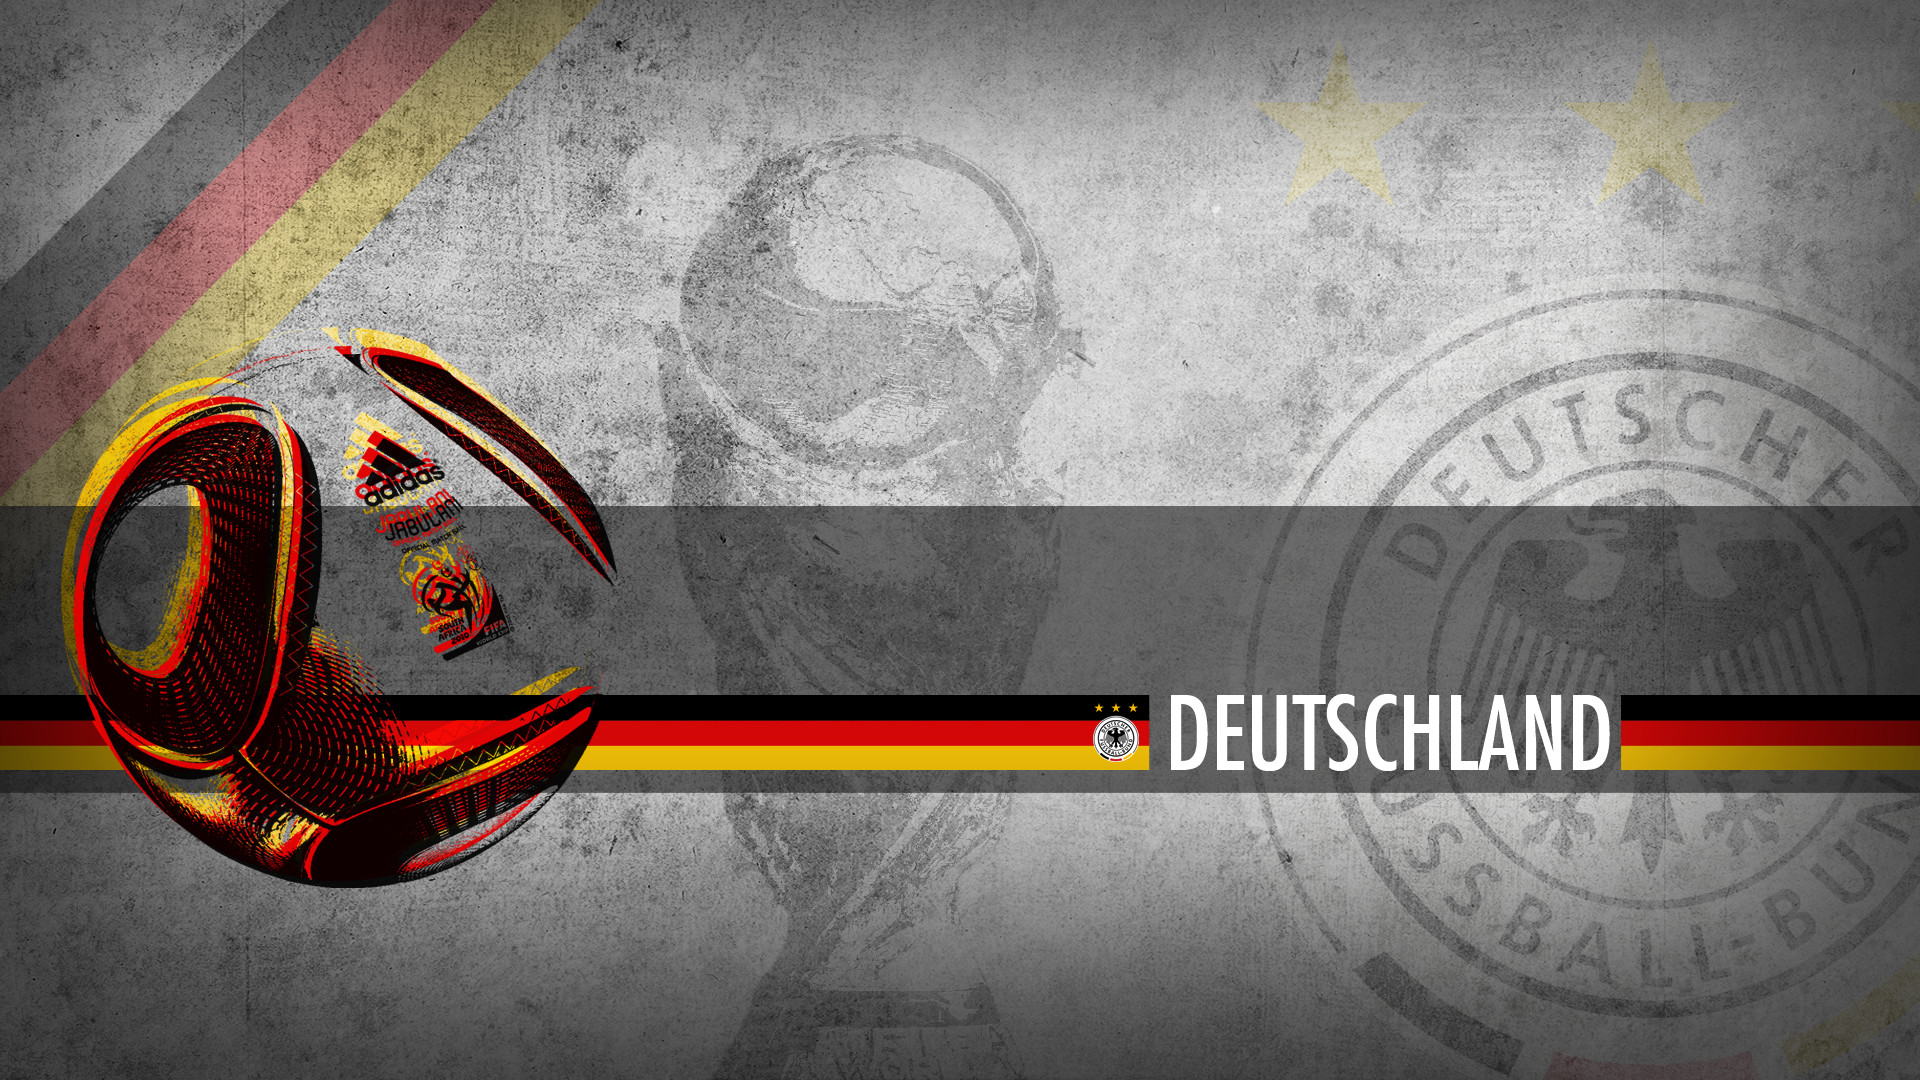 1920x1080 German National Soccer Team images Die Mannschaft HD wallpaper and  background photos